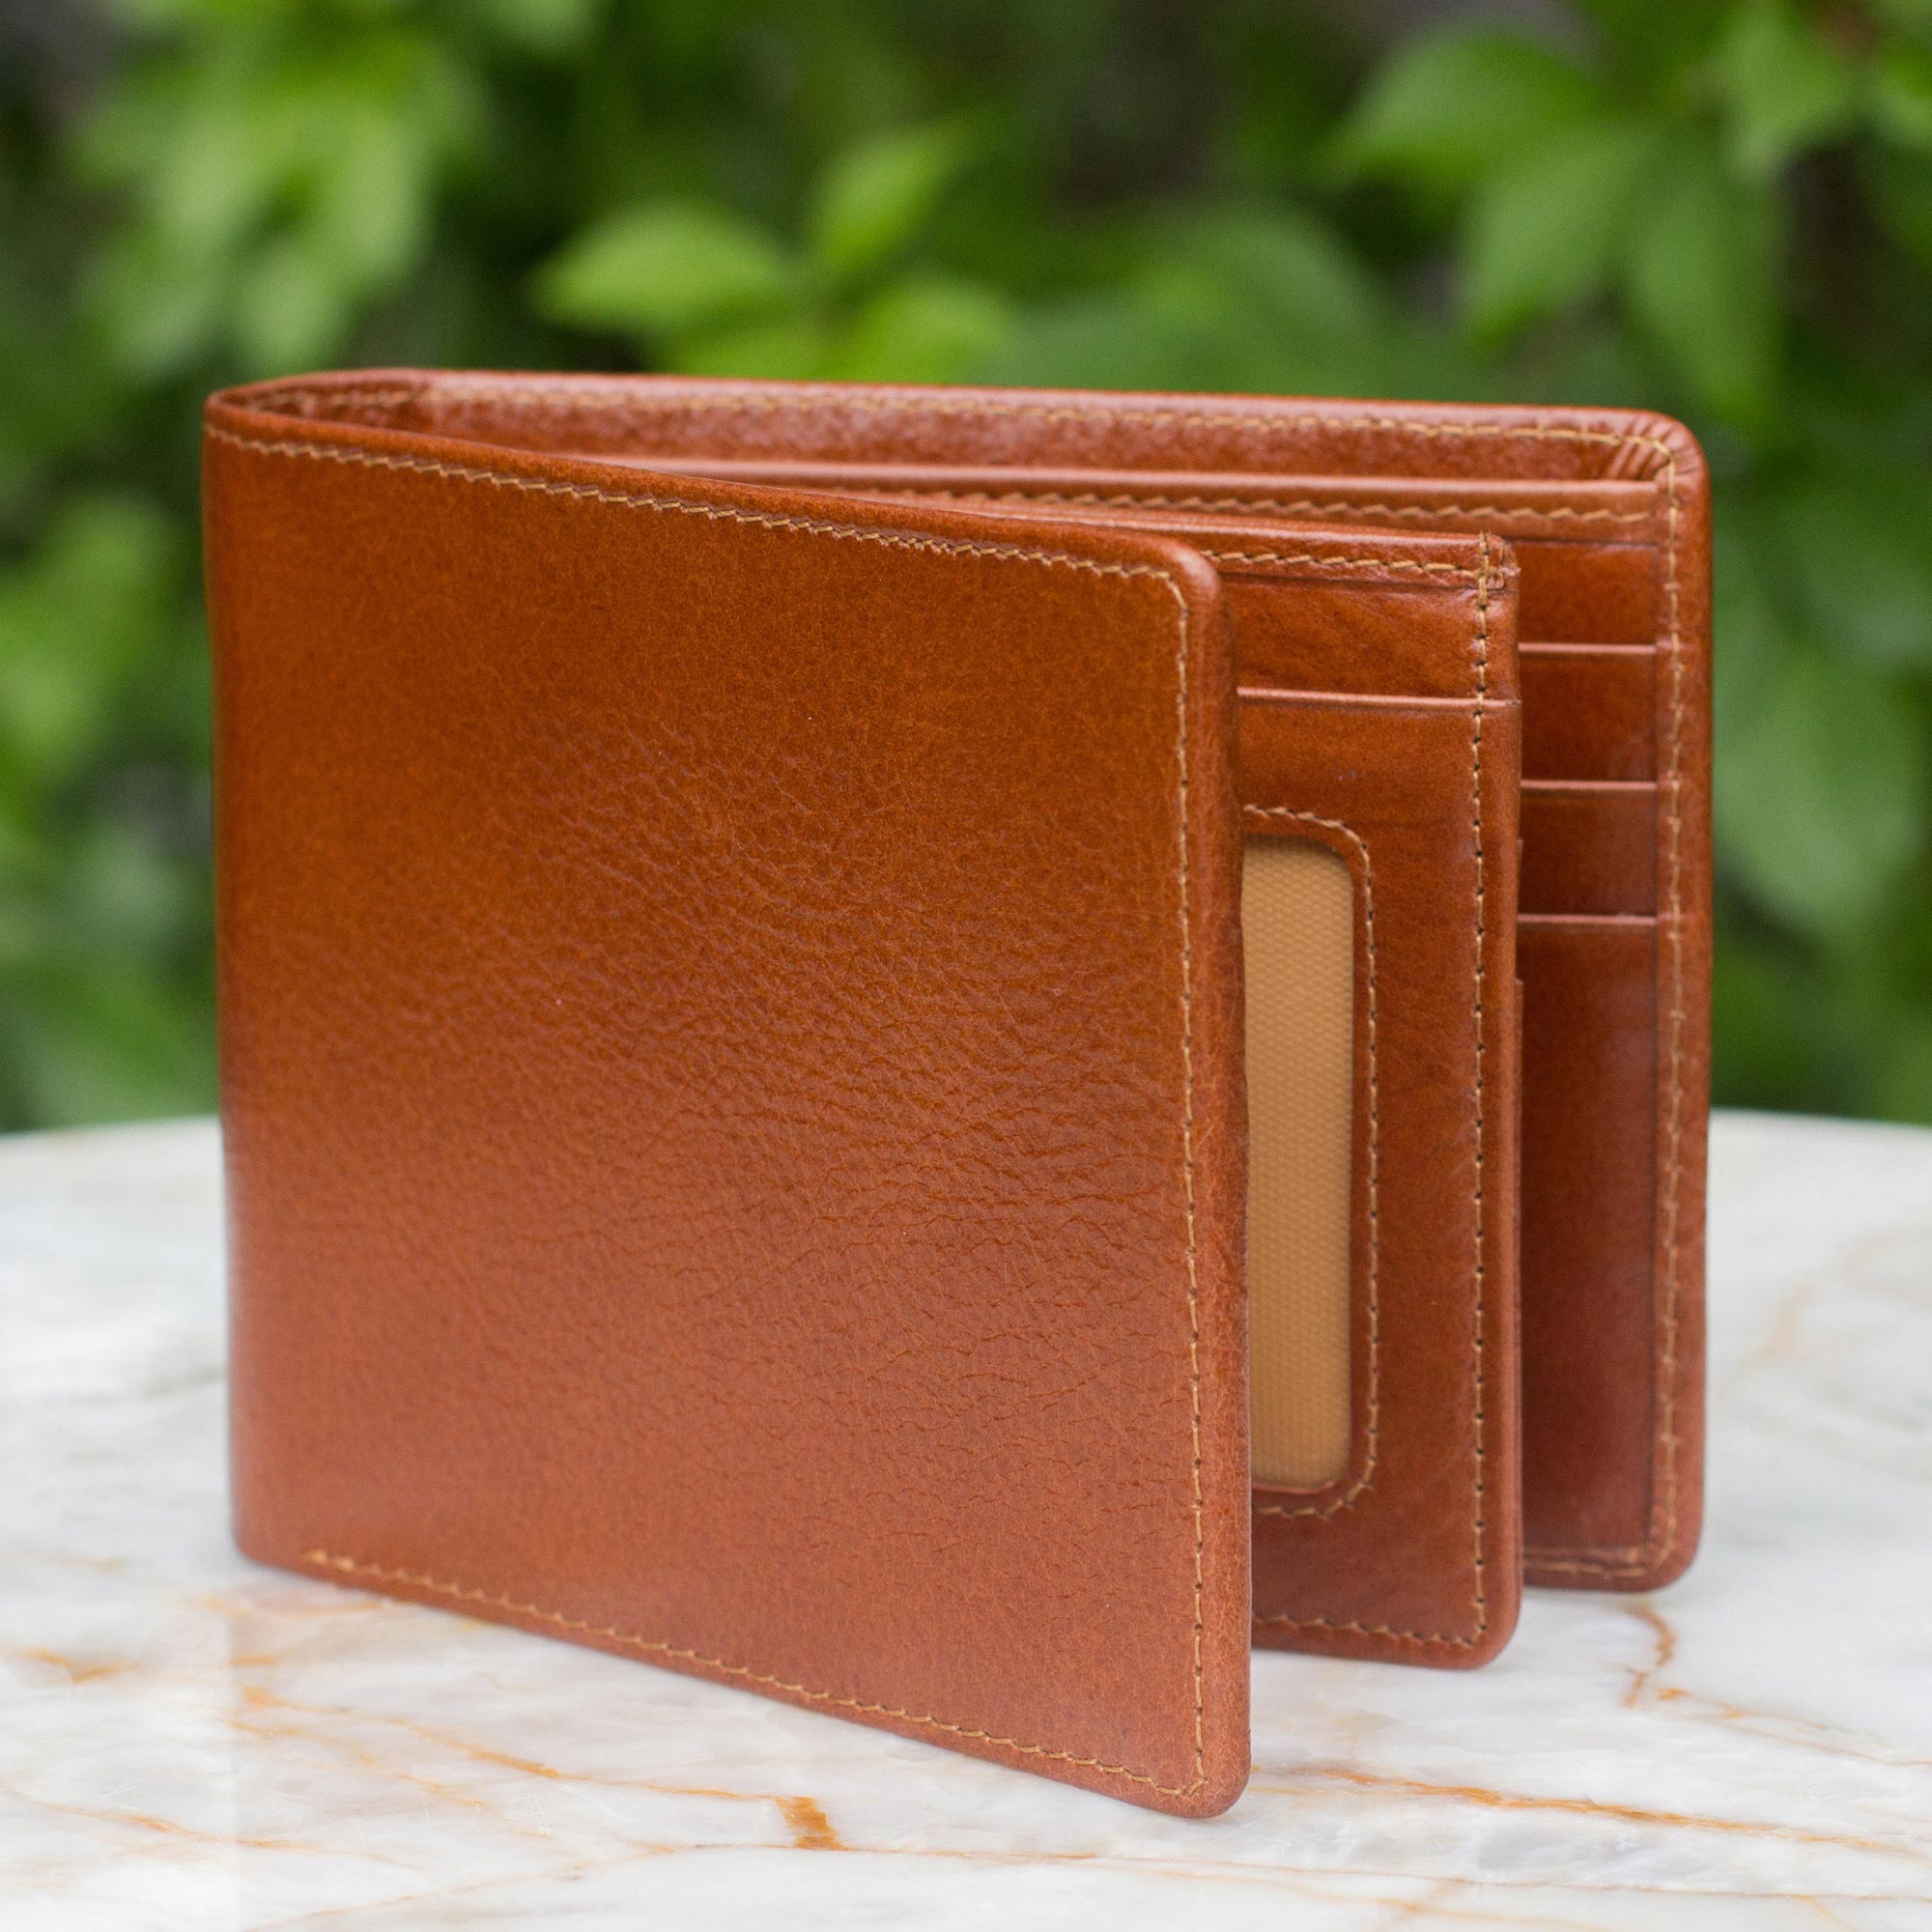 Men's leather wallet, 'Brown Minimalist' trifold handcrafted tooled caramel brown leather